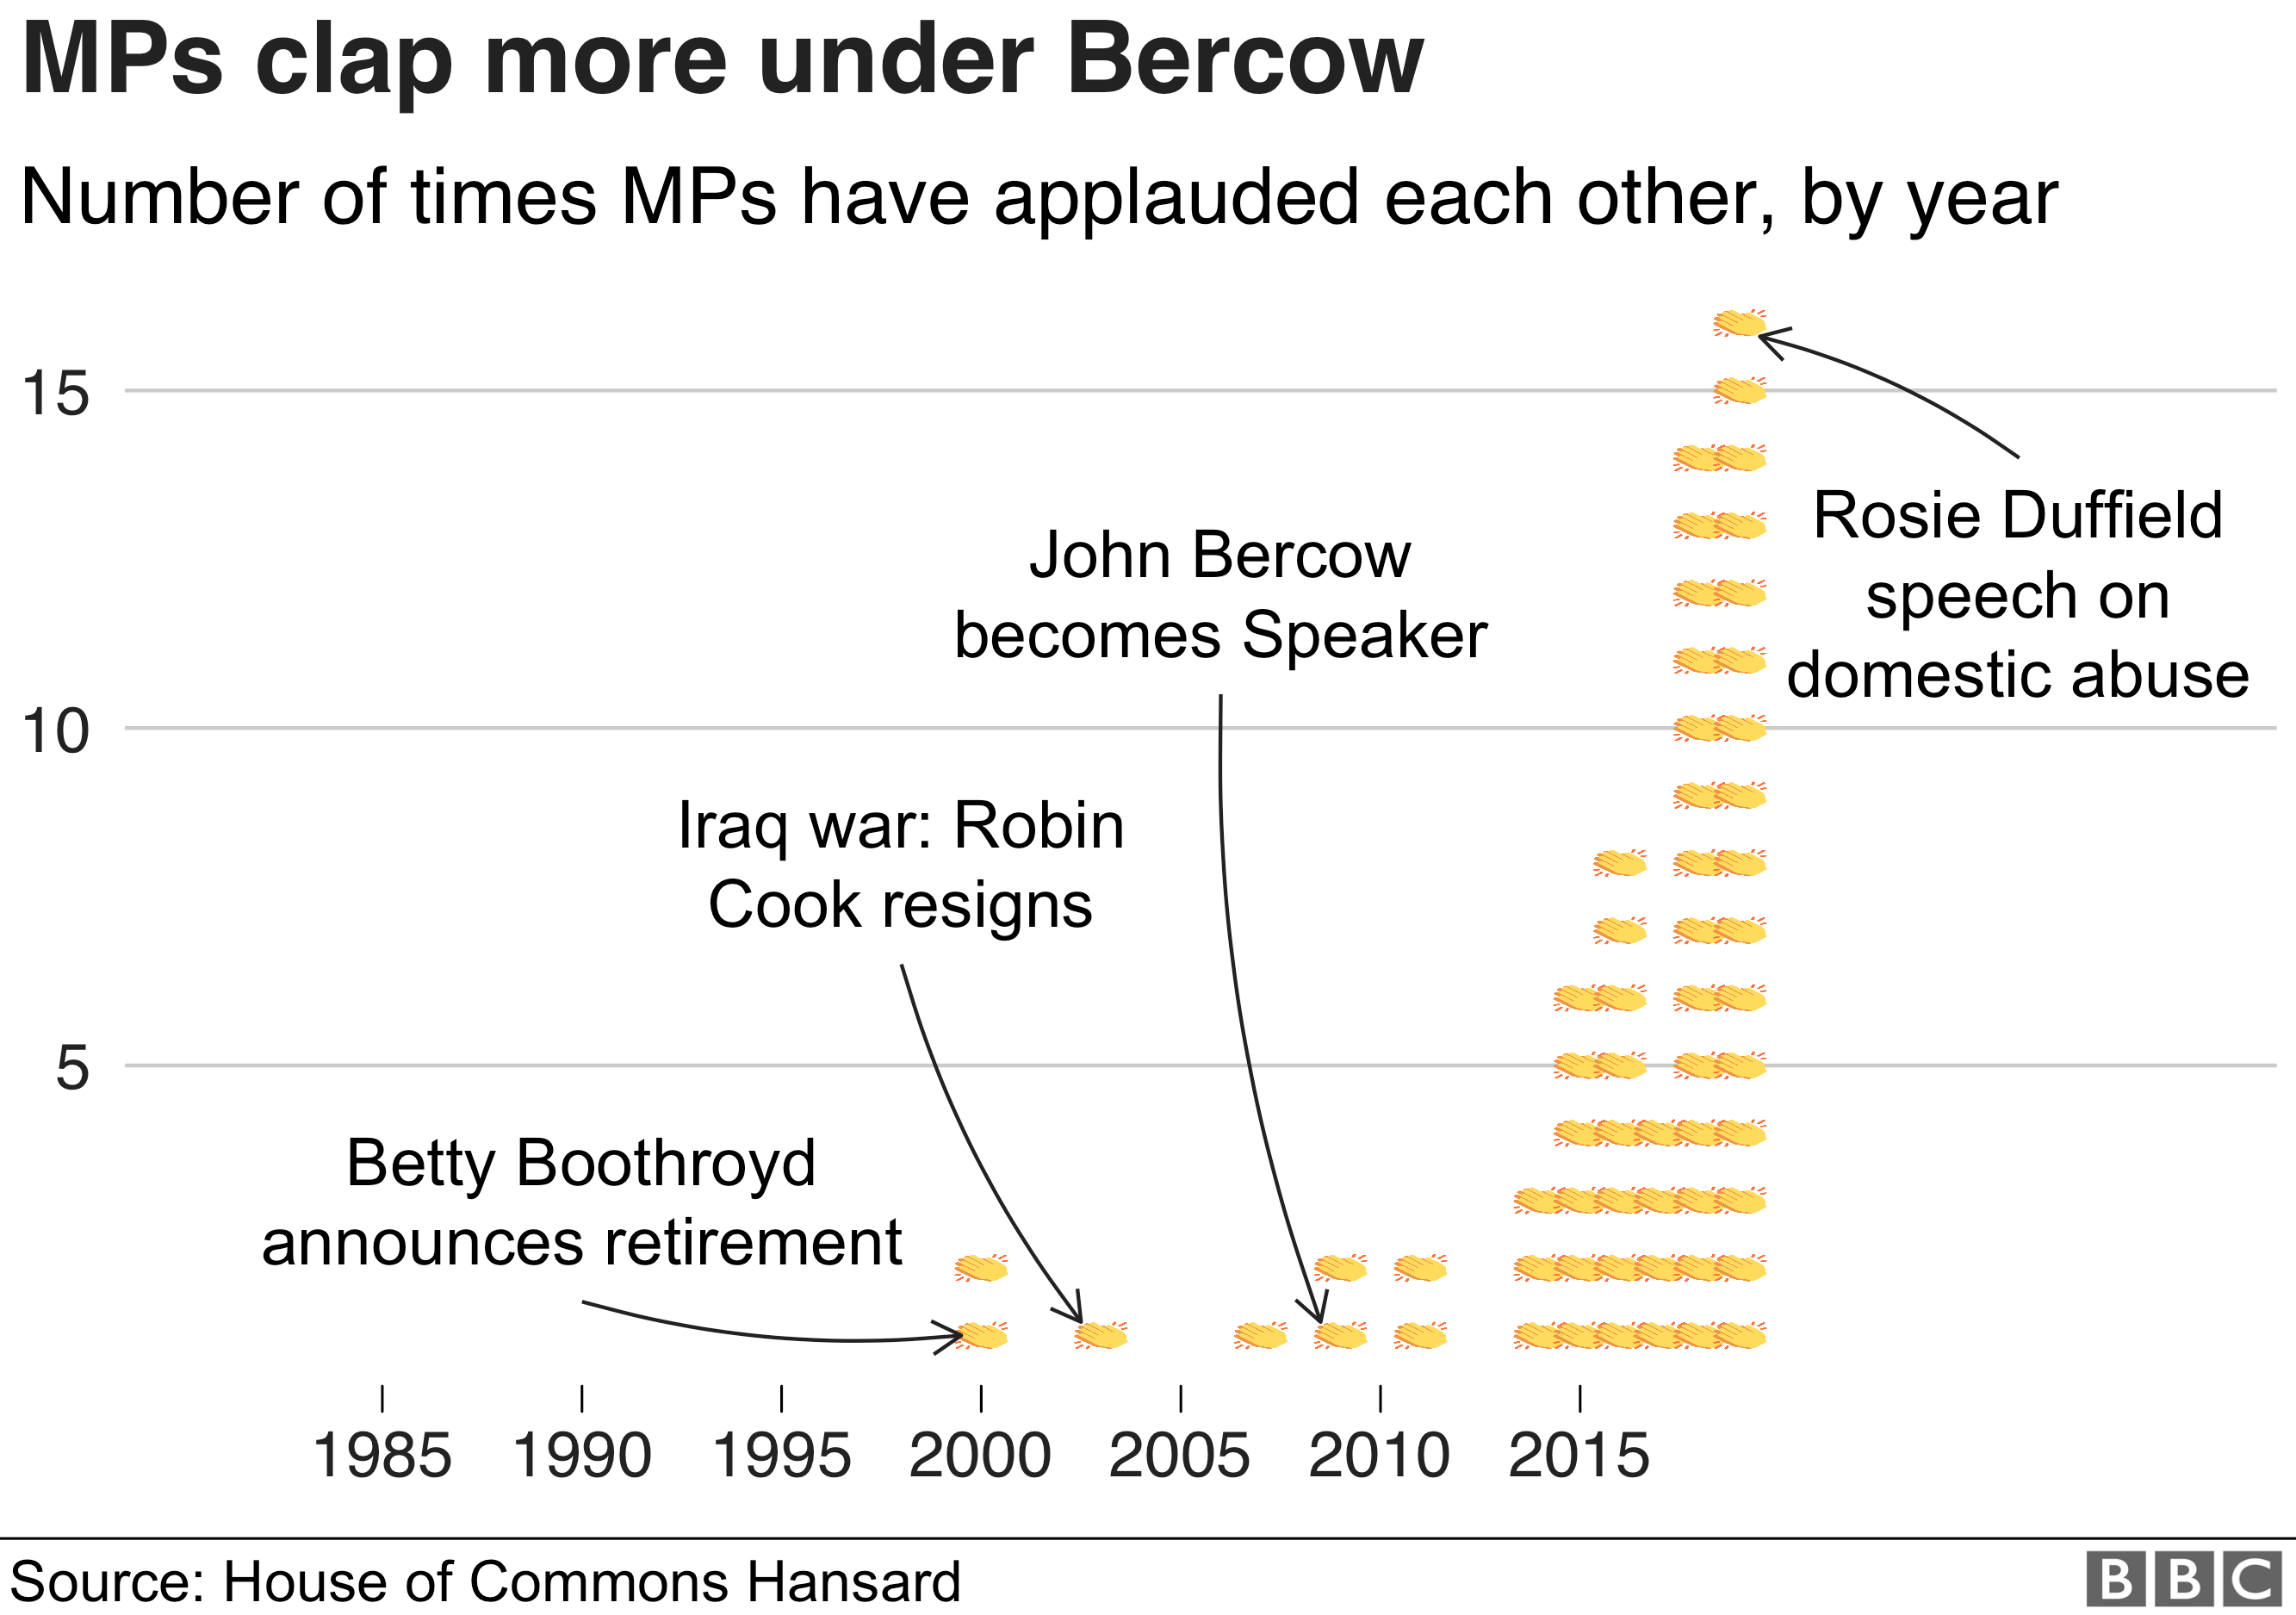 Chart showing number of rounds of applause by year